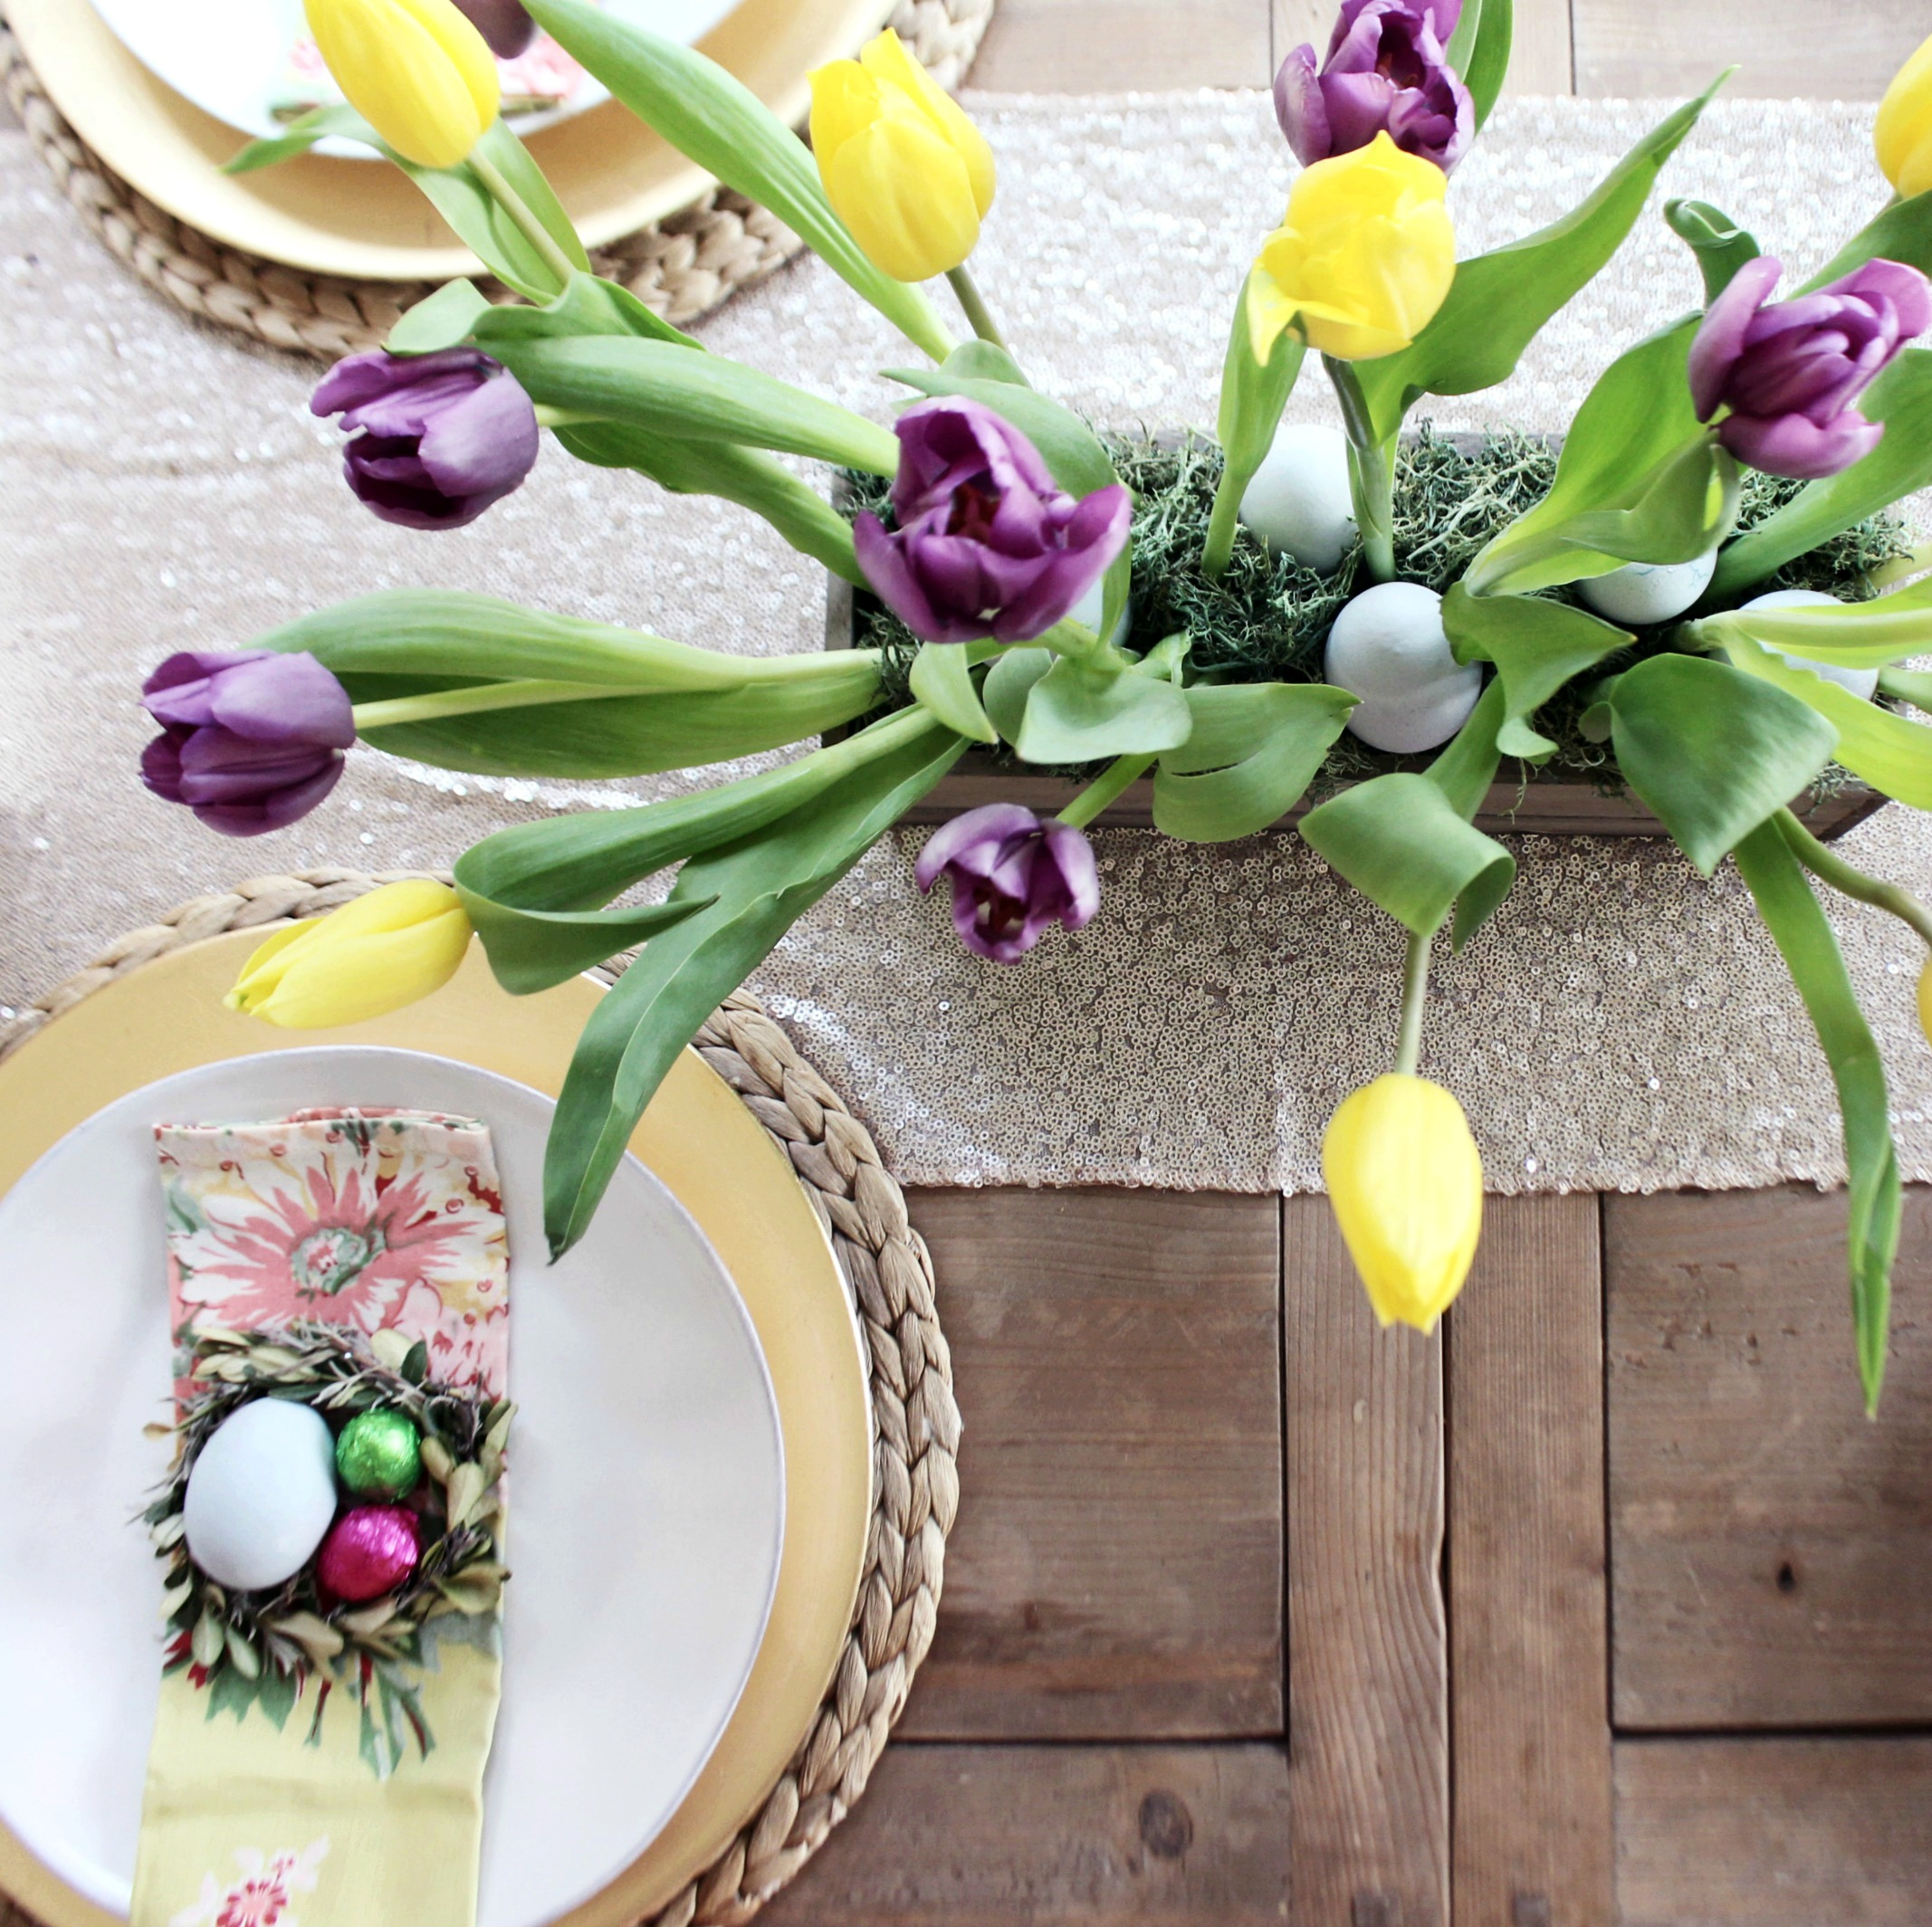 Awesome How To Make A Tulip Centerpiece For Your Easter Table Zoe Download Free Architecture Designs Intelgarnamadebymaigaardcom